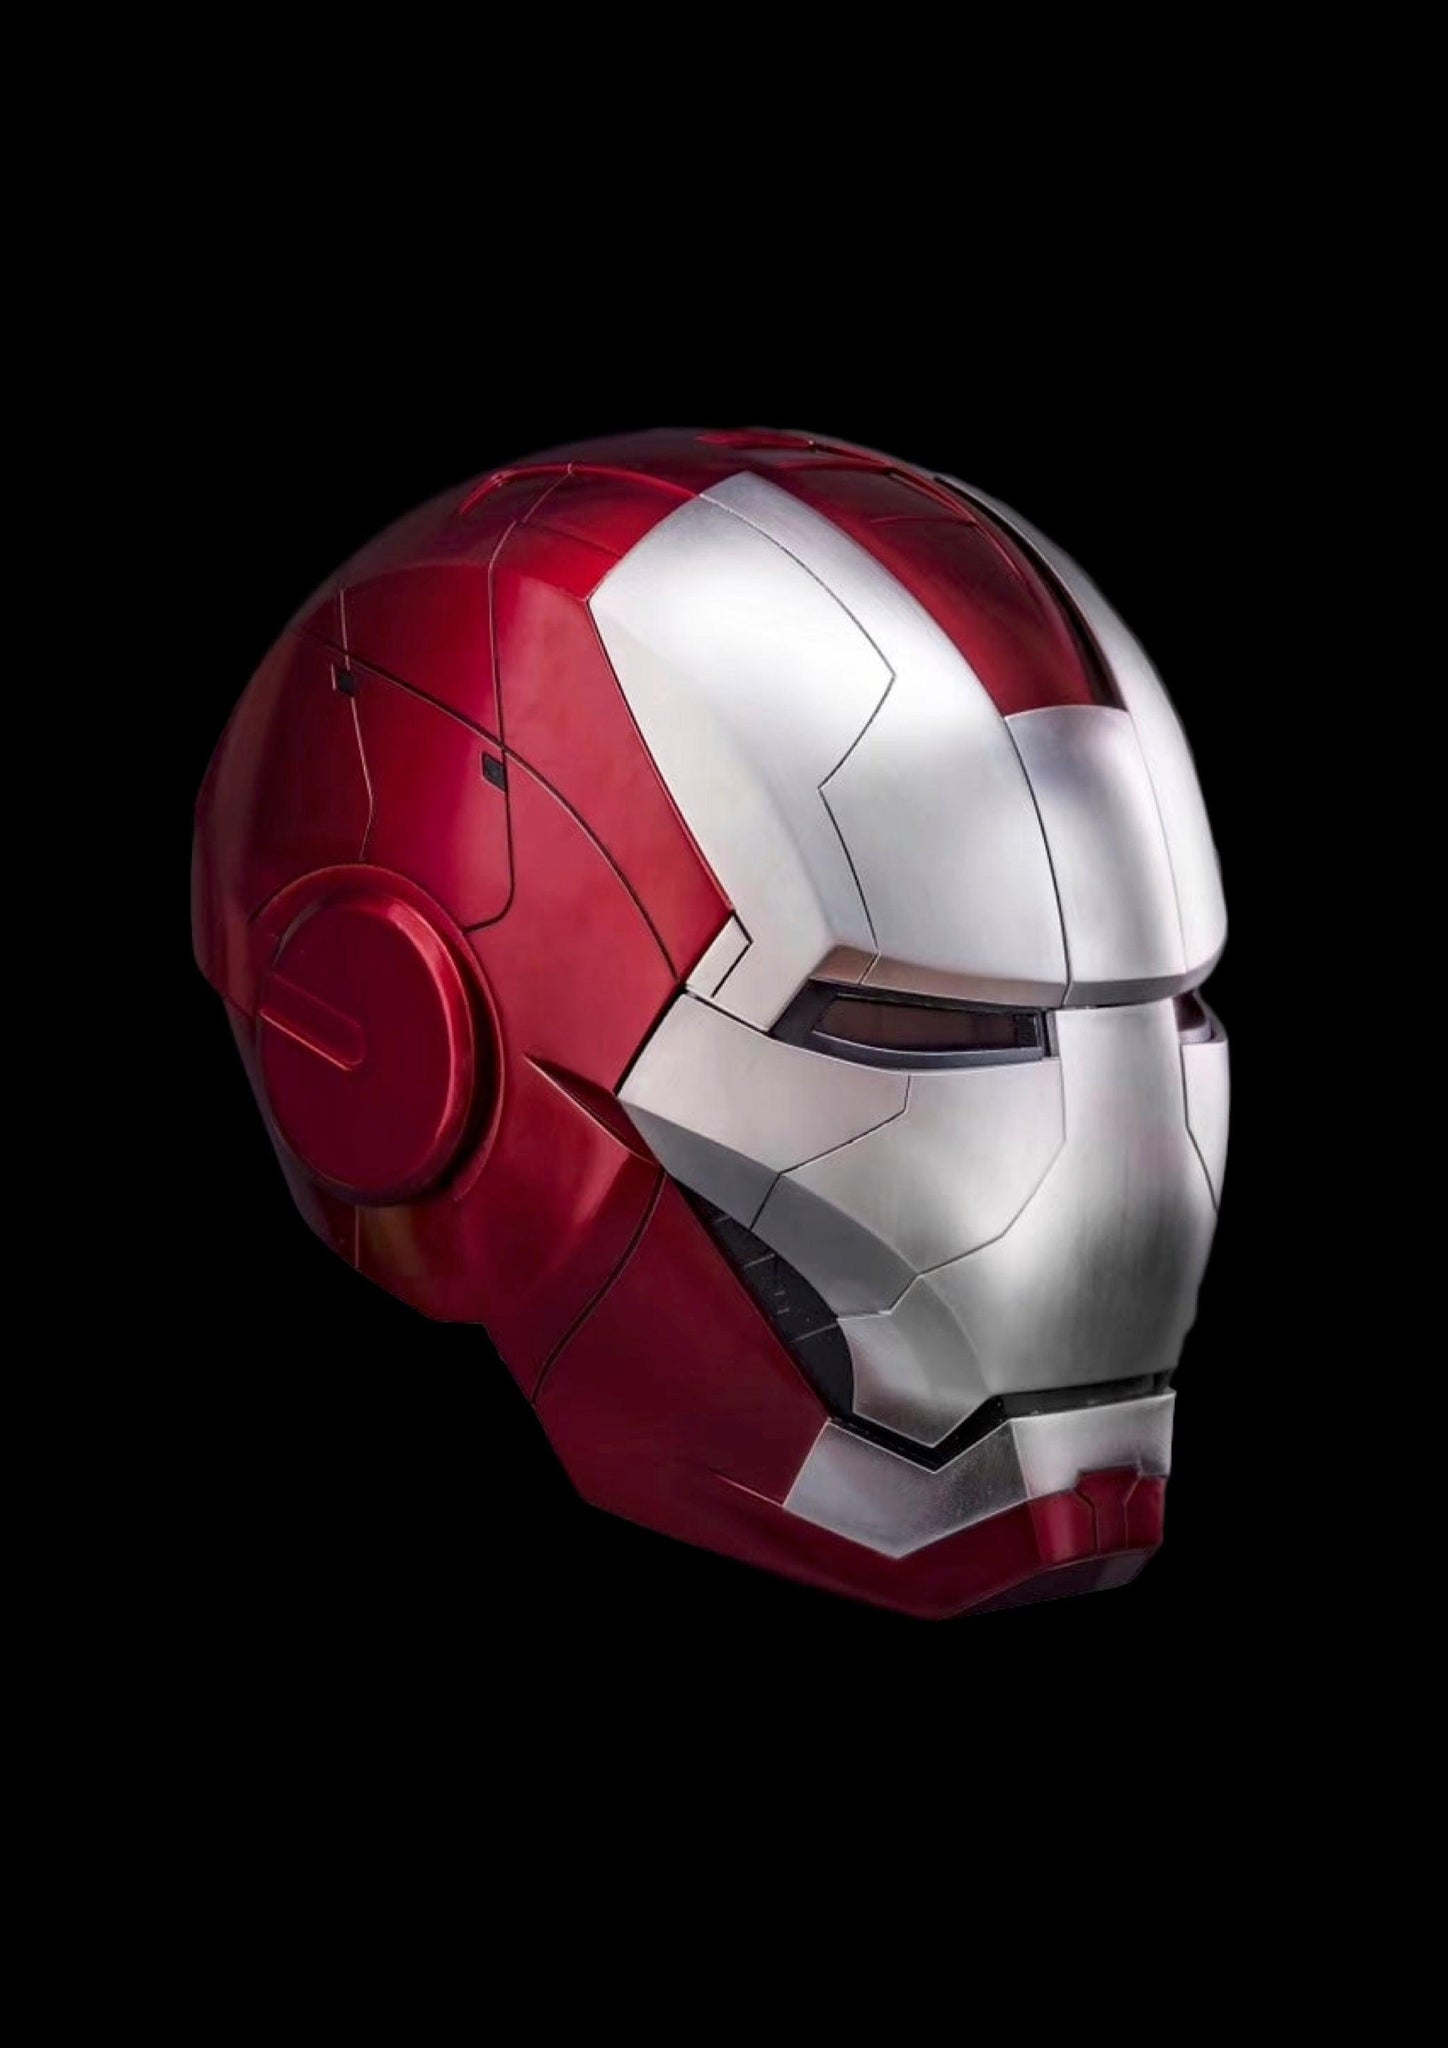 Iron Man: MK5: Wearable Helmet: Electronic Open/Close: AutoKing-(1/1) Life Size Scale-AutoKing-Planet Action Figures